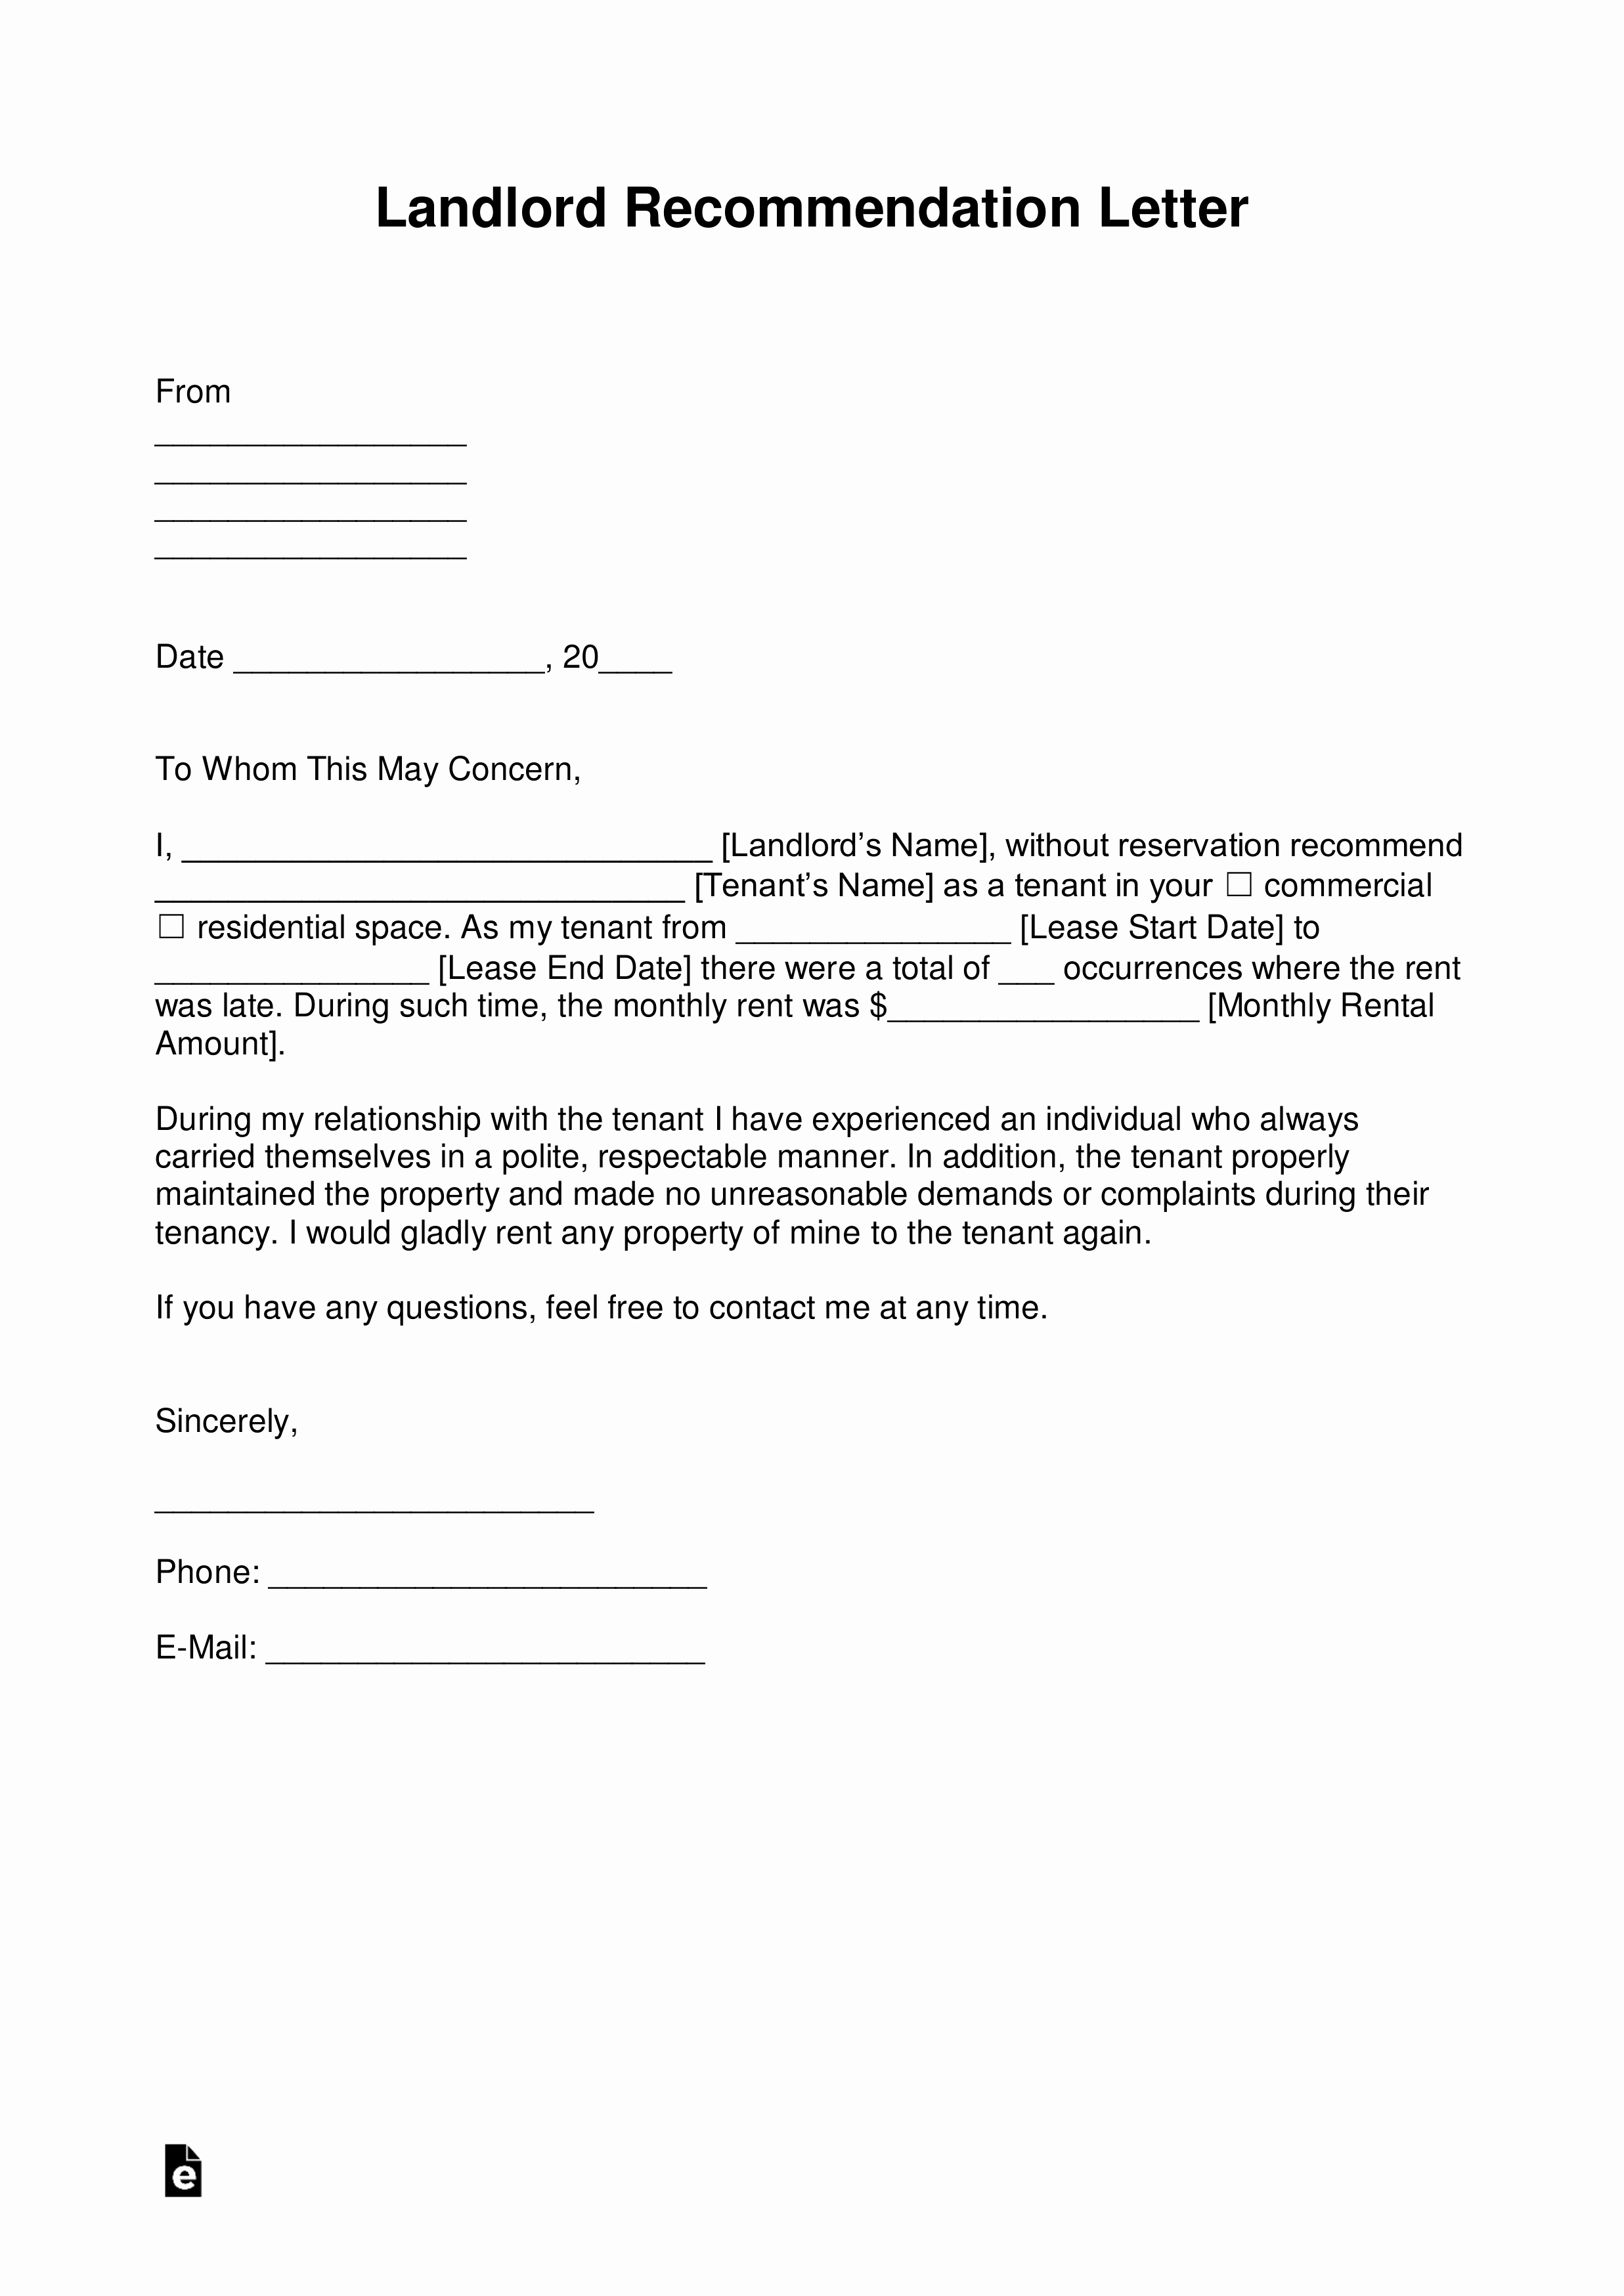 Rent Reference Letter Sample Lovely Free Landlord Re Mendation Letter for A Tenant with